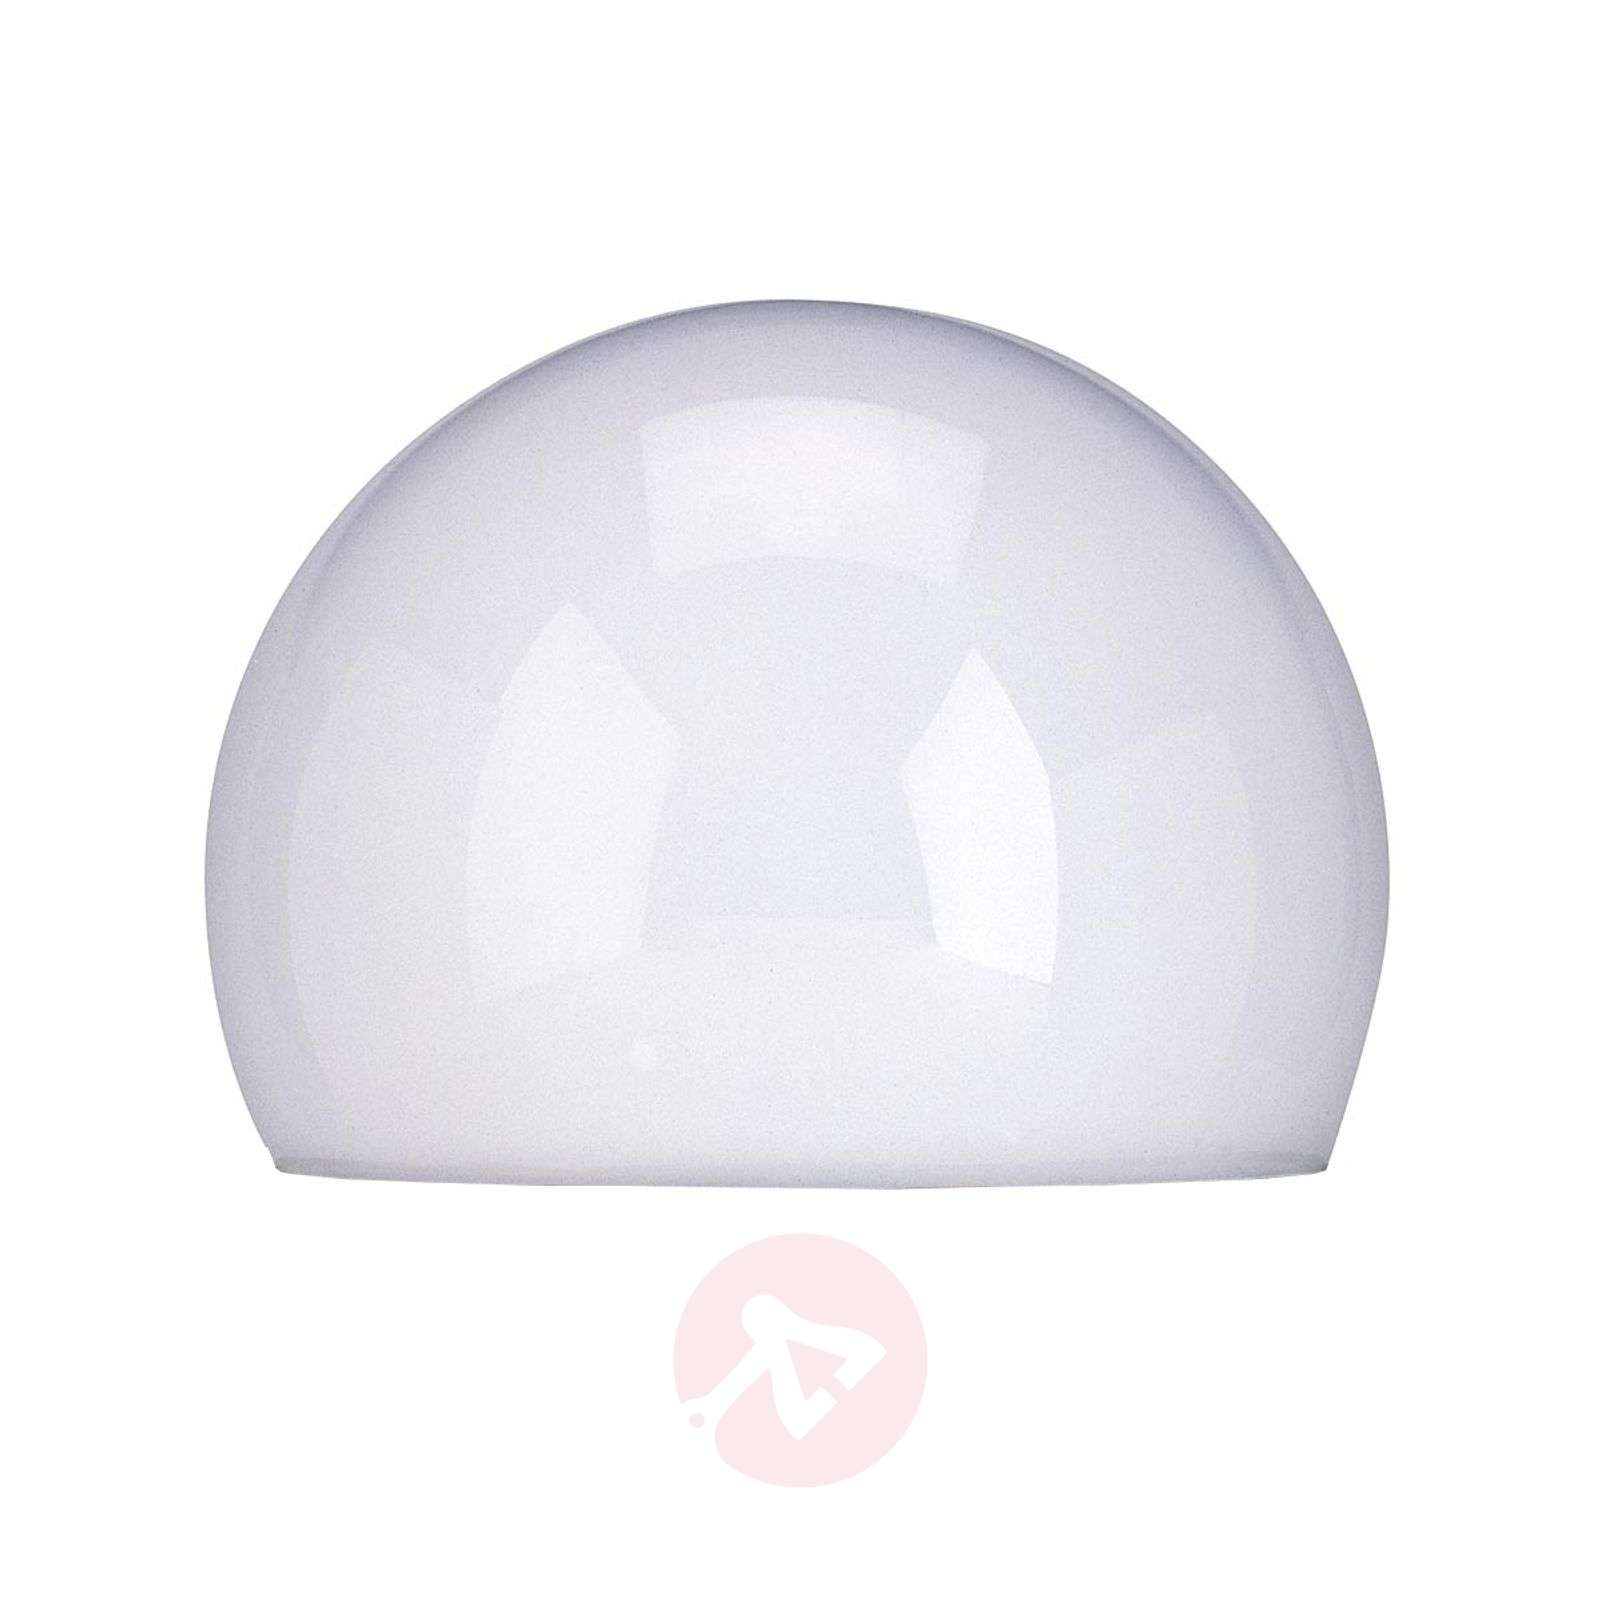 Spare glass lampshade for the Wagenfeld table lamp_9030005_1